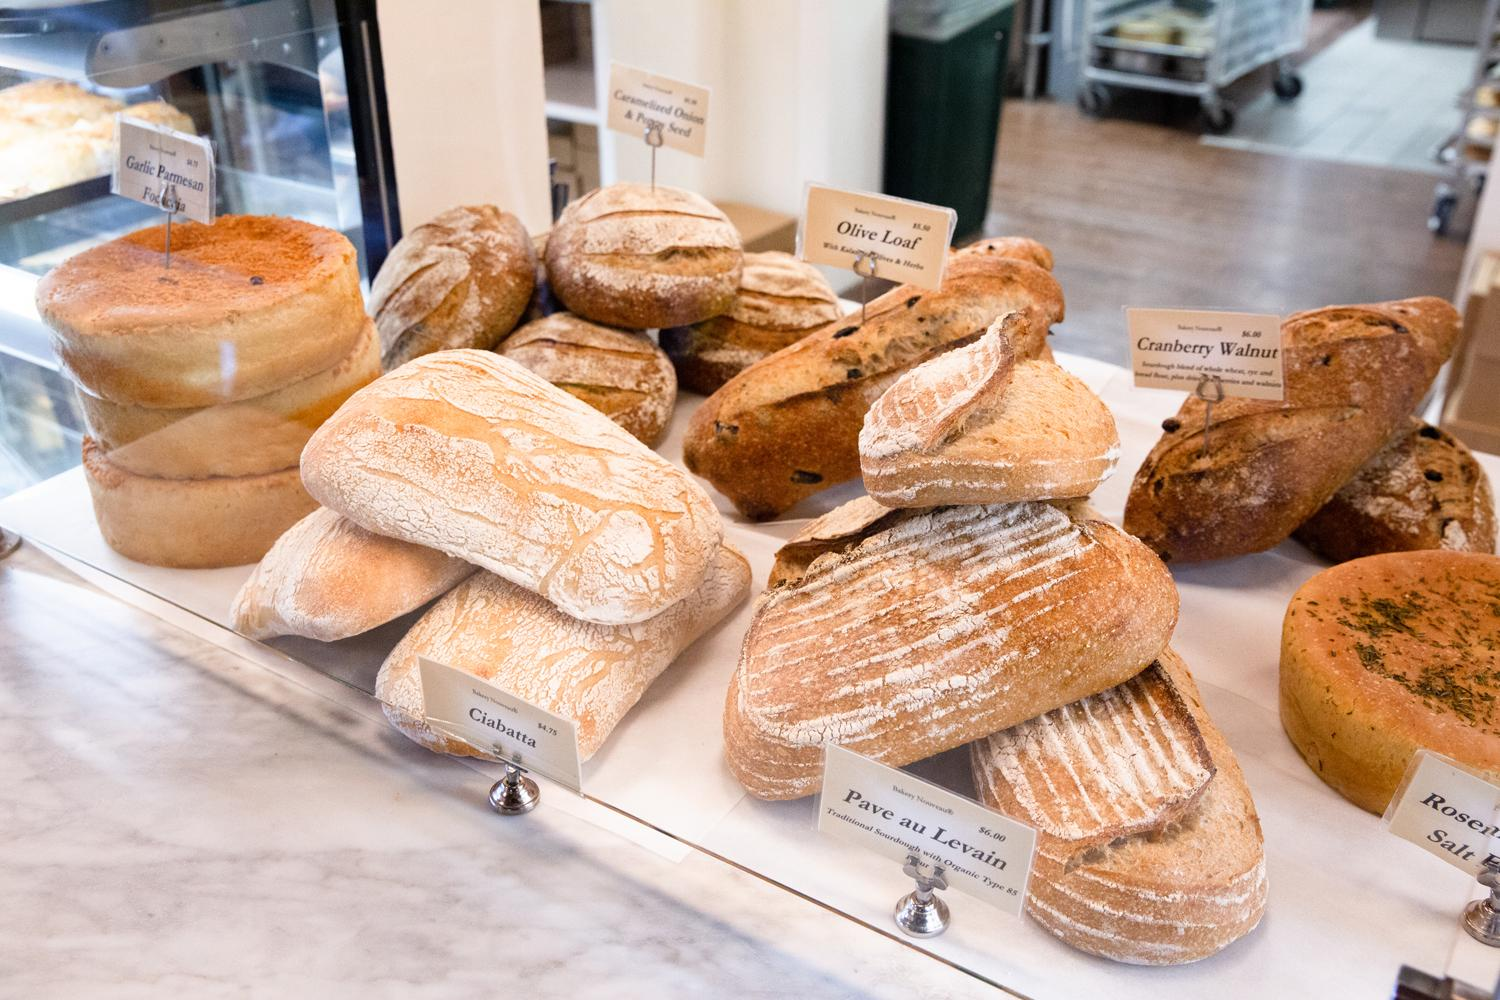 The aroma of freshly baking bread beckons you to step inside Bakery Nouveau. Just south of Seattle, this picture perfect place feels like Paris. (Image: Bakery Nouveau)